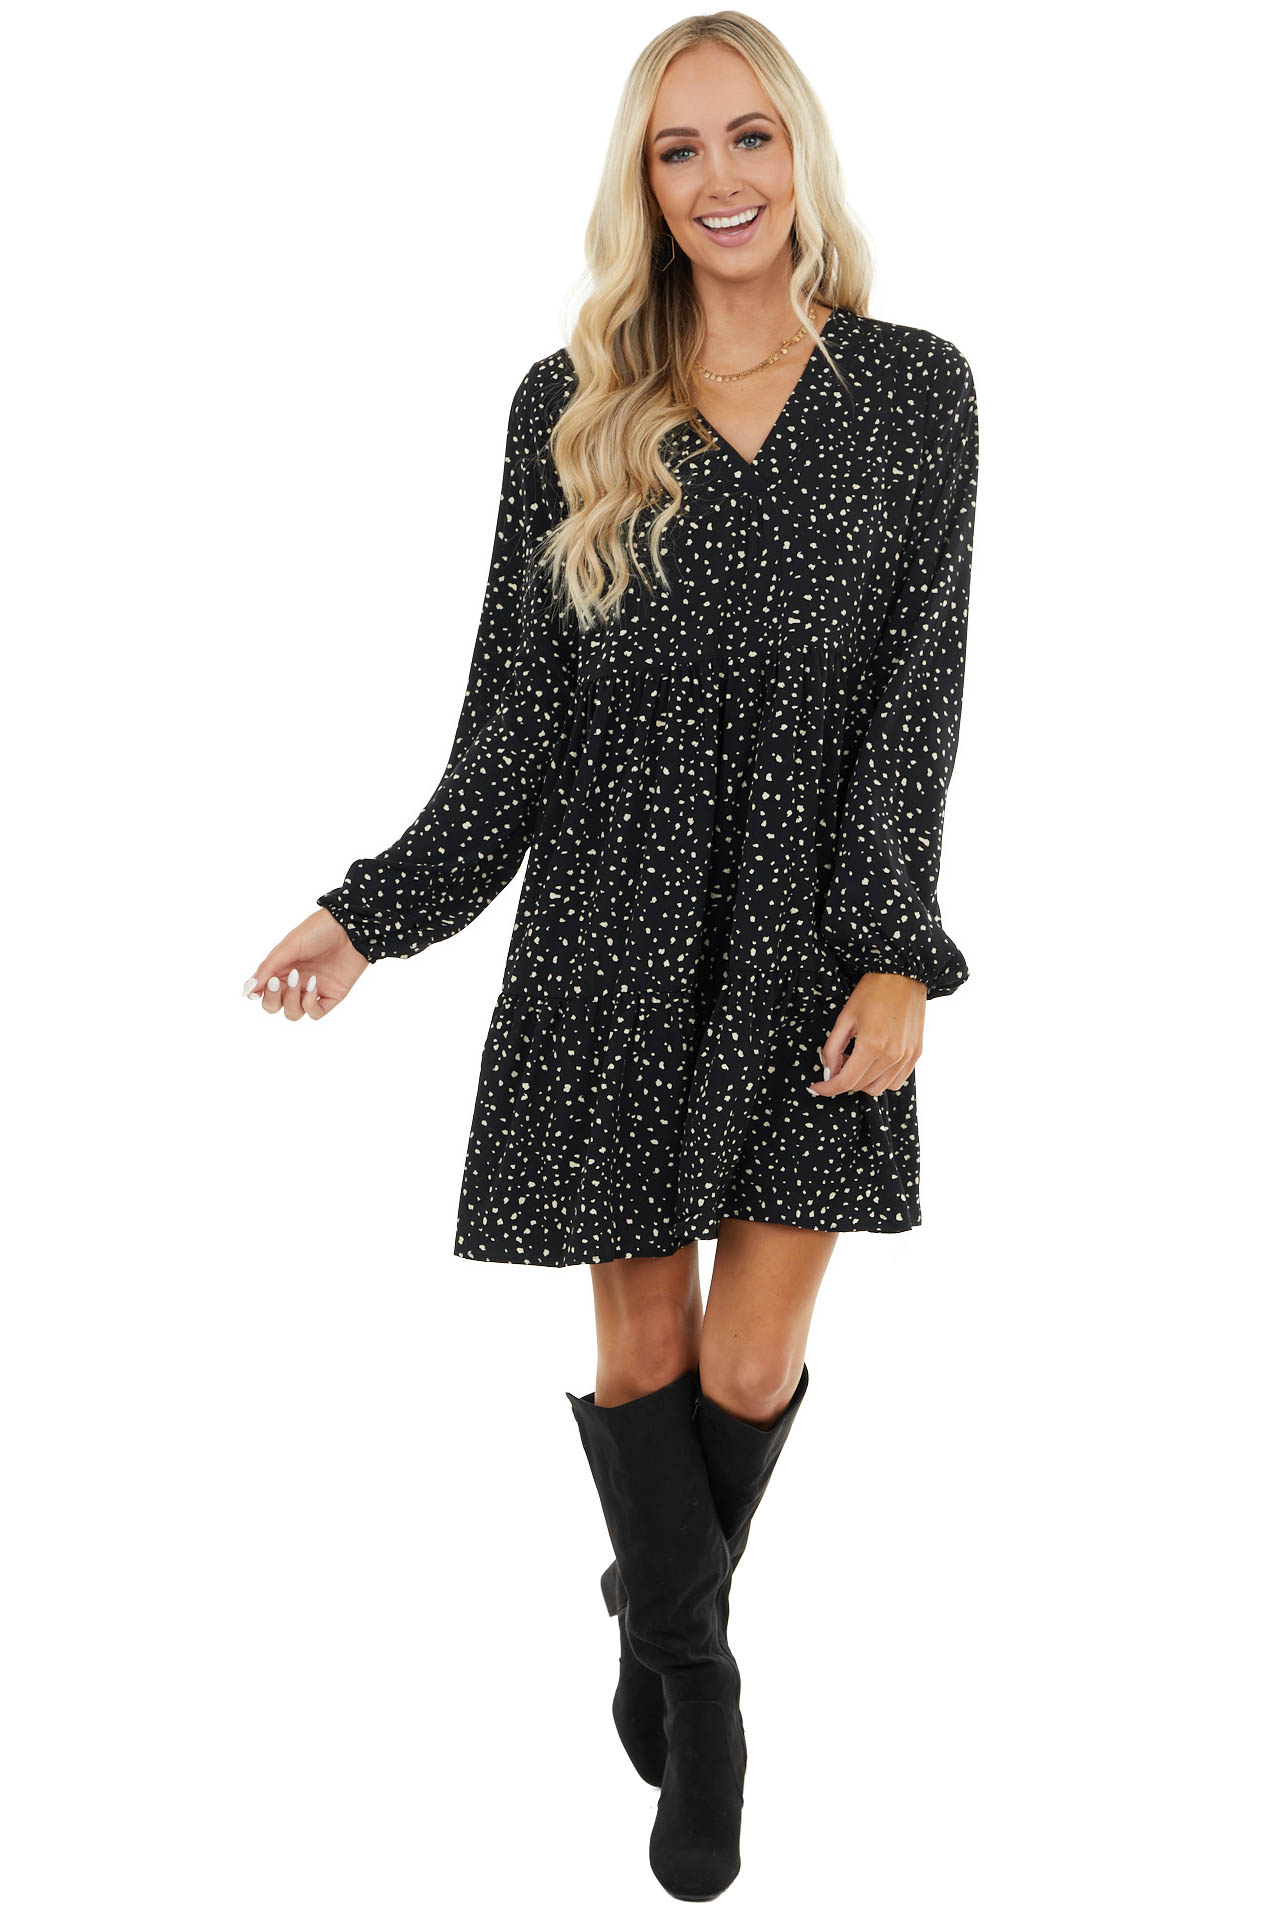 Black Cheetah Print Tiered Dress with Bubble Sleeves